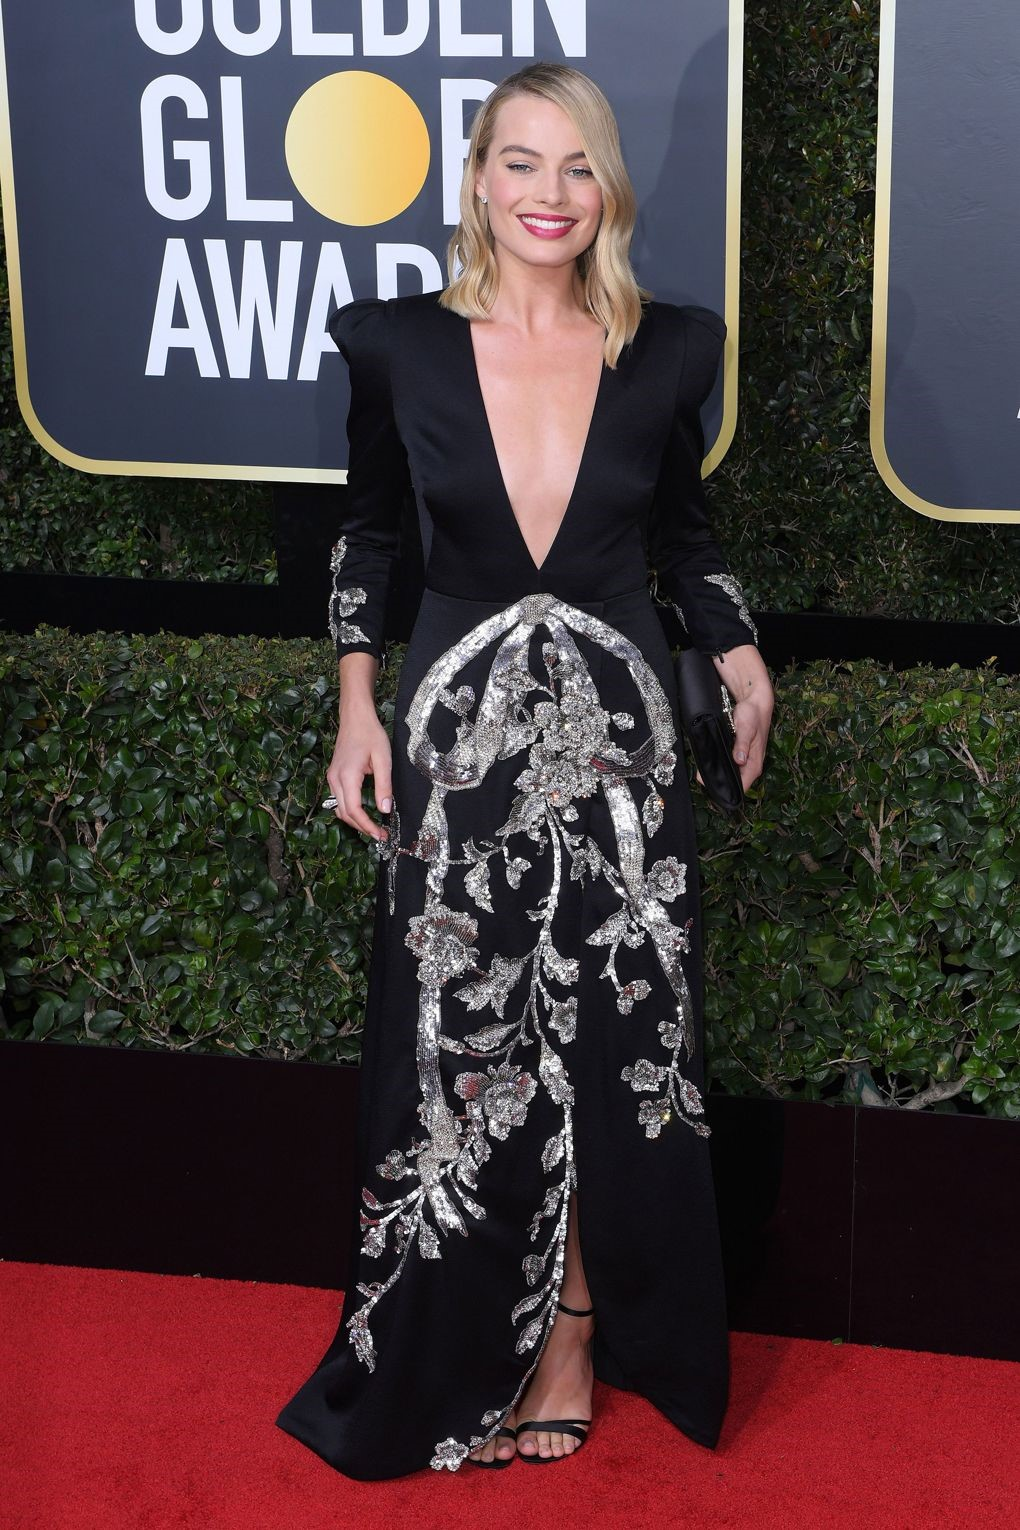 Maggie Robot in Vintage inspired Gucci with the right amount of sparkle, she completed her look with a Roger Viver Sandals making it a complete look. golden globes 2018 - 6 - JD's top 13 red carpet looks of Golden Globes 2018